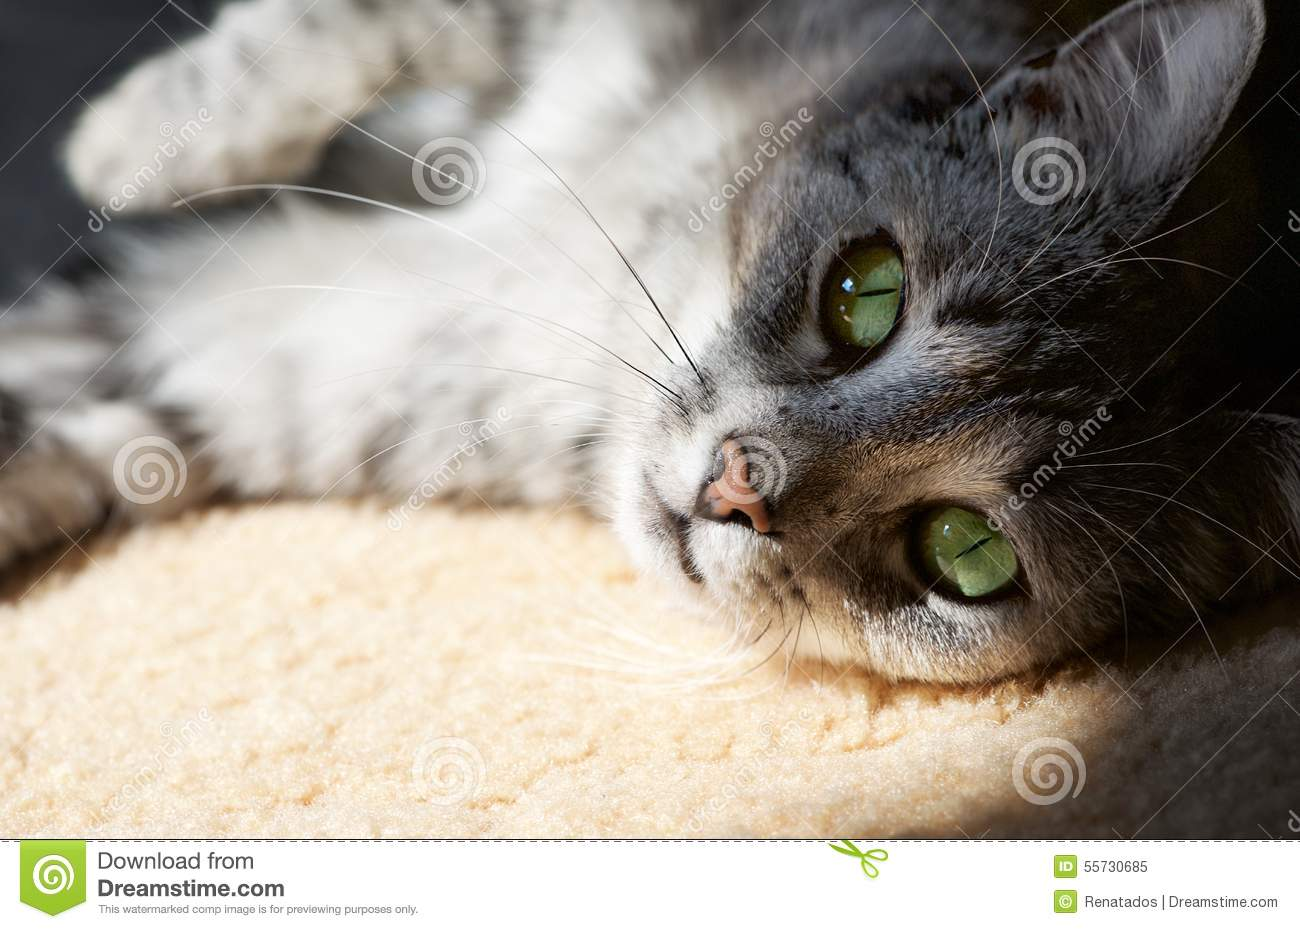 Resting cat in natural home background in a shade, lazy cat face close up, small sleepy lazy cat, domestic animal on siesta